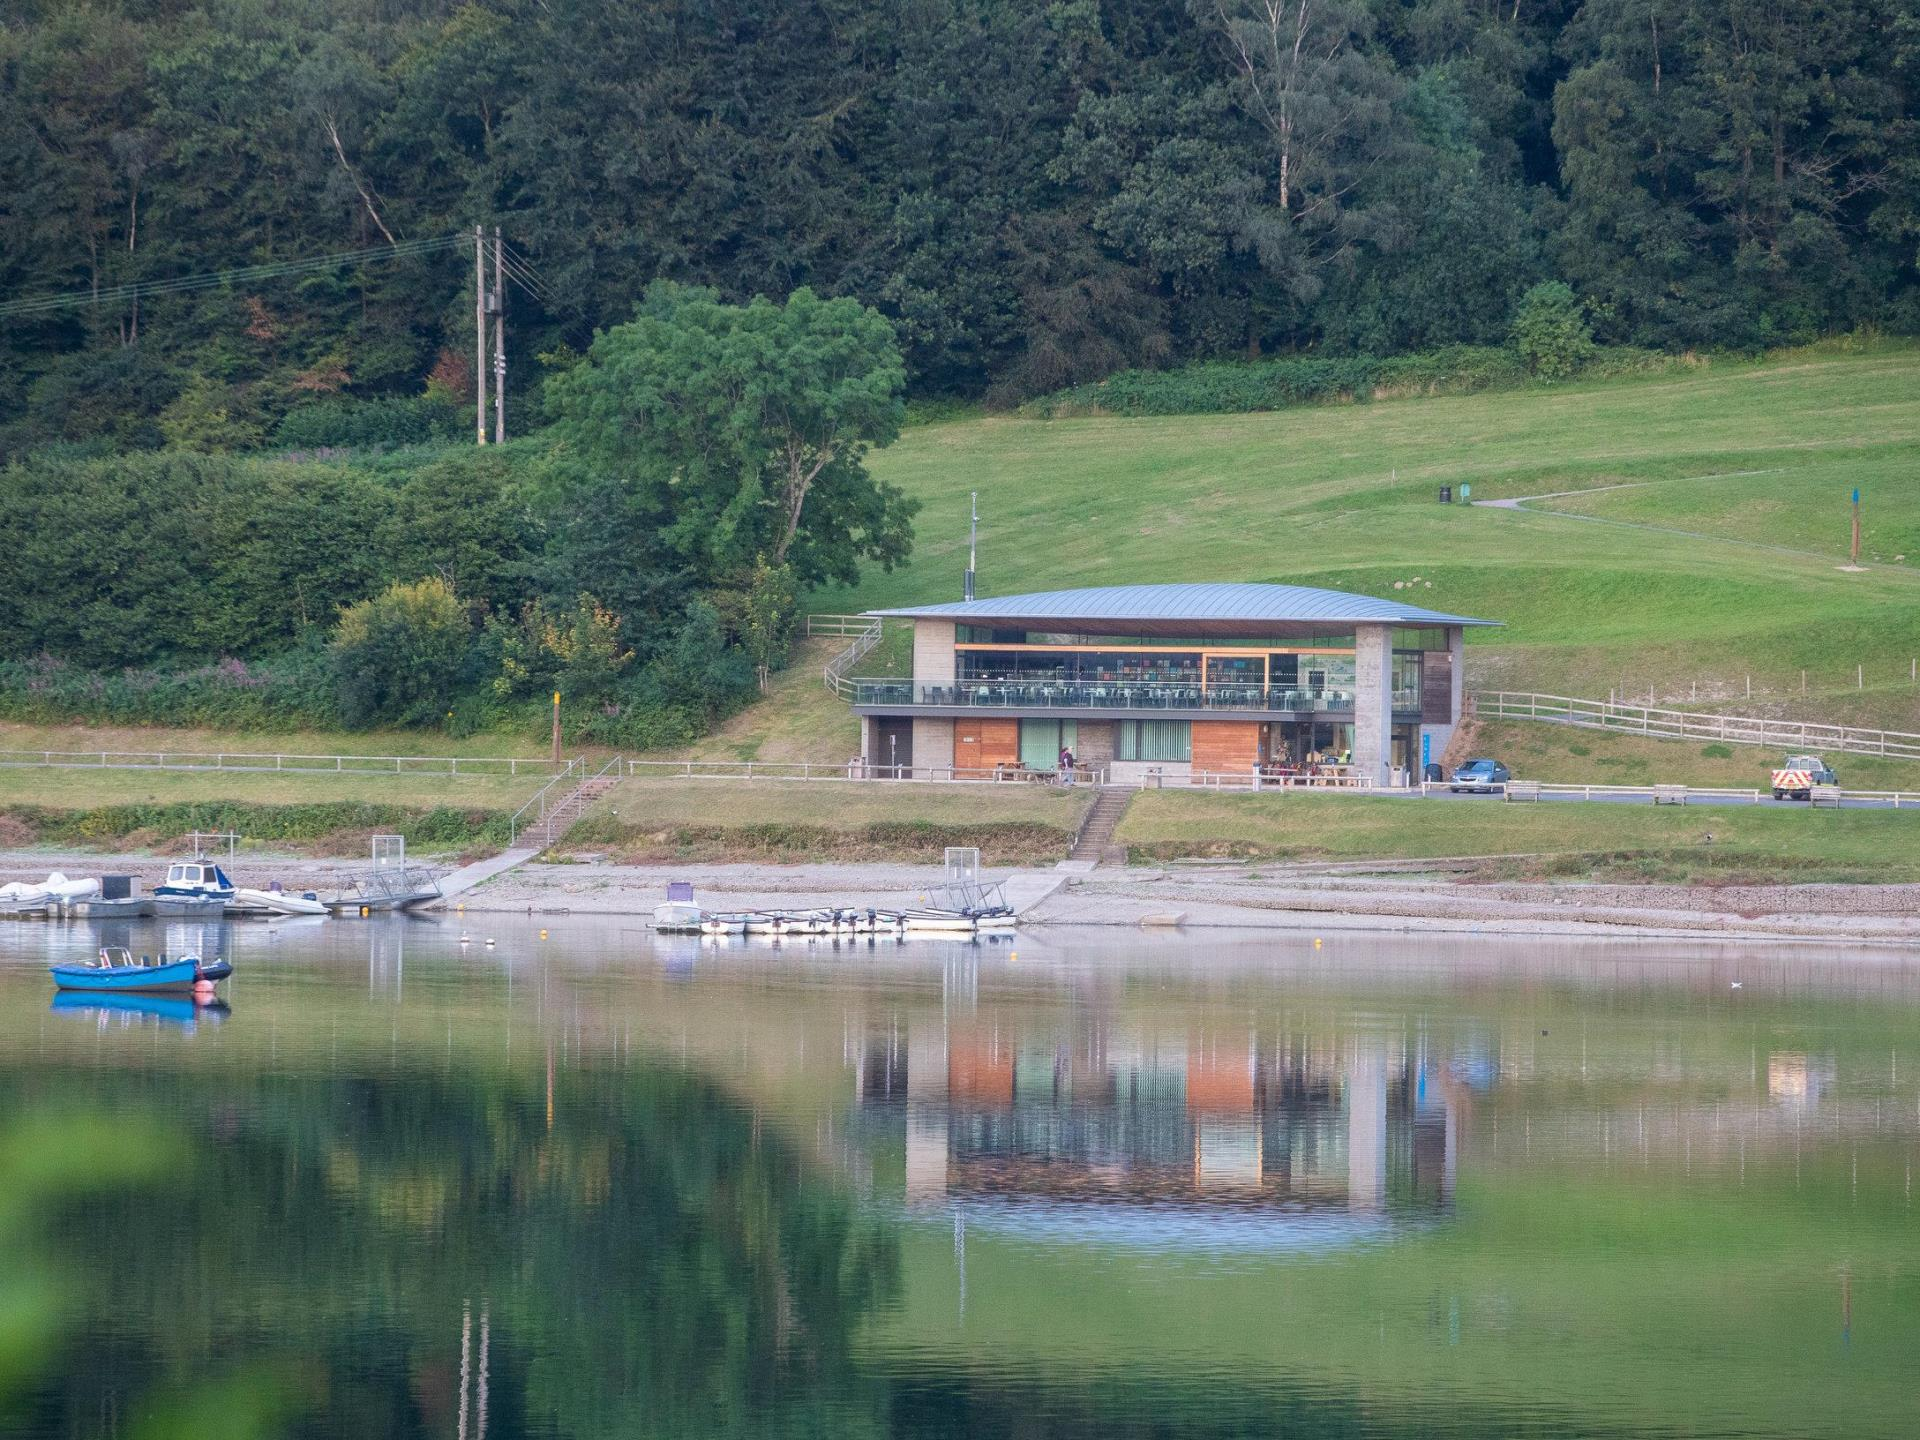 Llandgefedd Lake Visitor Centre